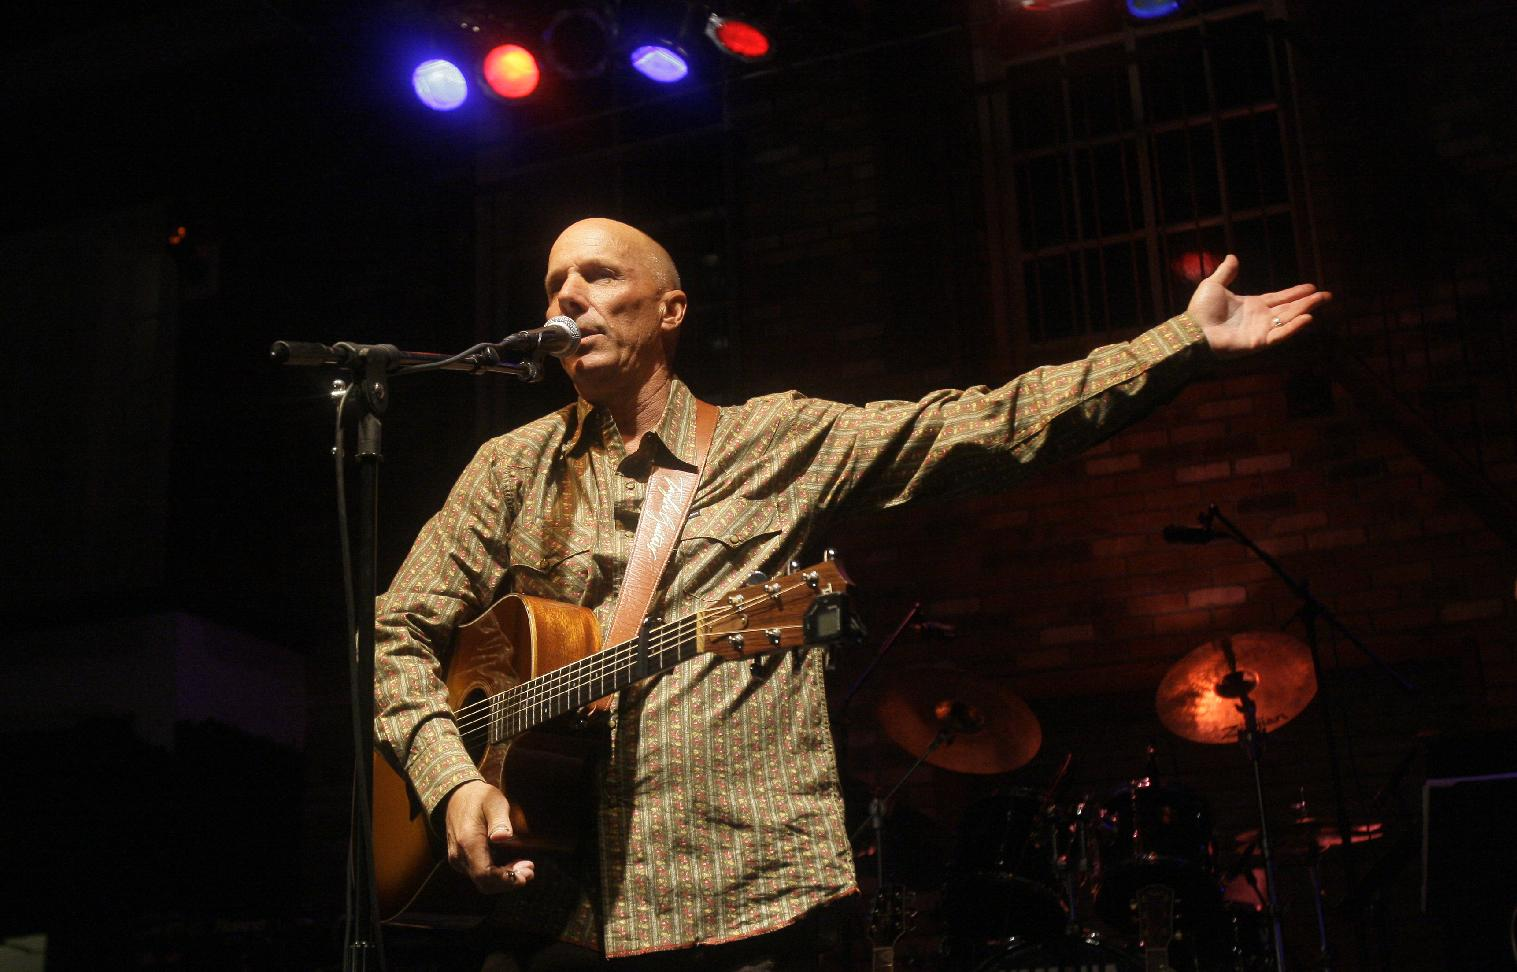 In this March 11, 2010 file photo, San Francisco Giants third base coach Tim Flannery plays music at Jake Peavy's Woodjock 2010 A Big League Jam Fest in Scottsdale, Ariz. Flannery, the San Francisco Giants' third-base coach and musician, presented the family of Bryan Stow with $96,000 during the weekend to help with his care as he continues to deal with traumatic injuries and brain damage from being severely beaten outside Dodger Stadium on opening day 2011